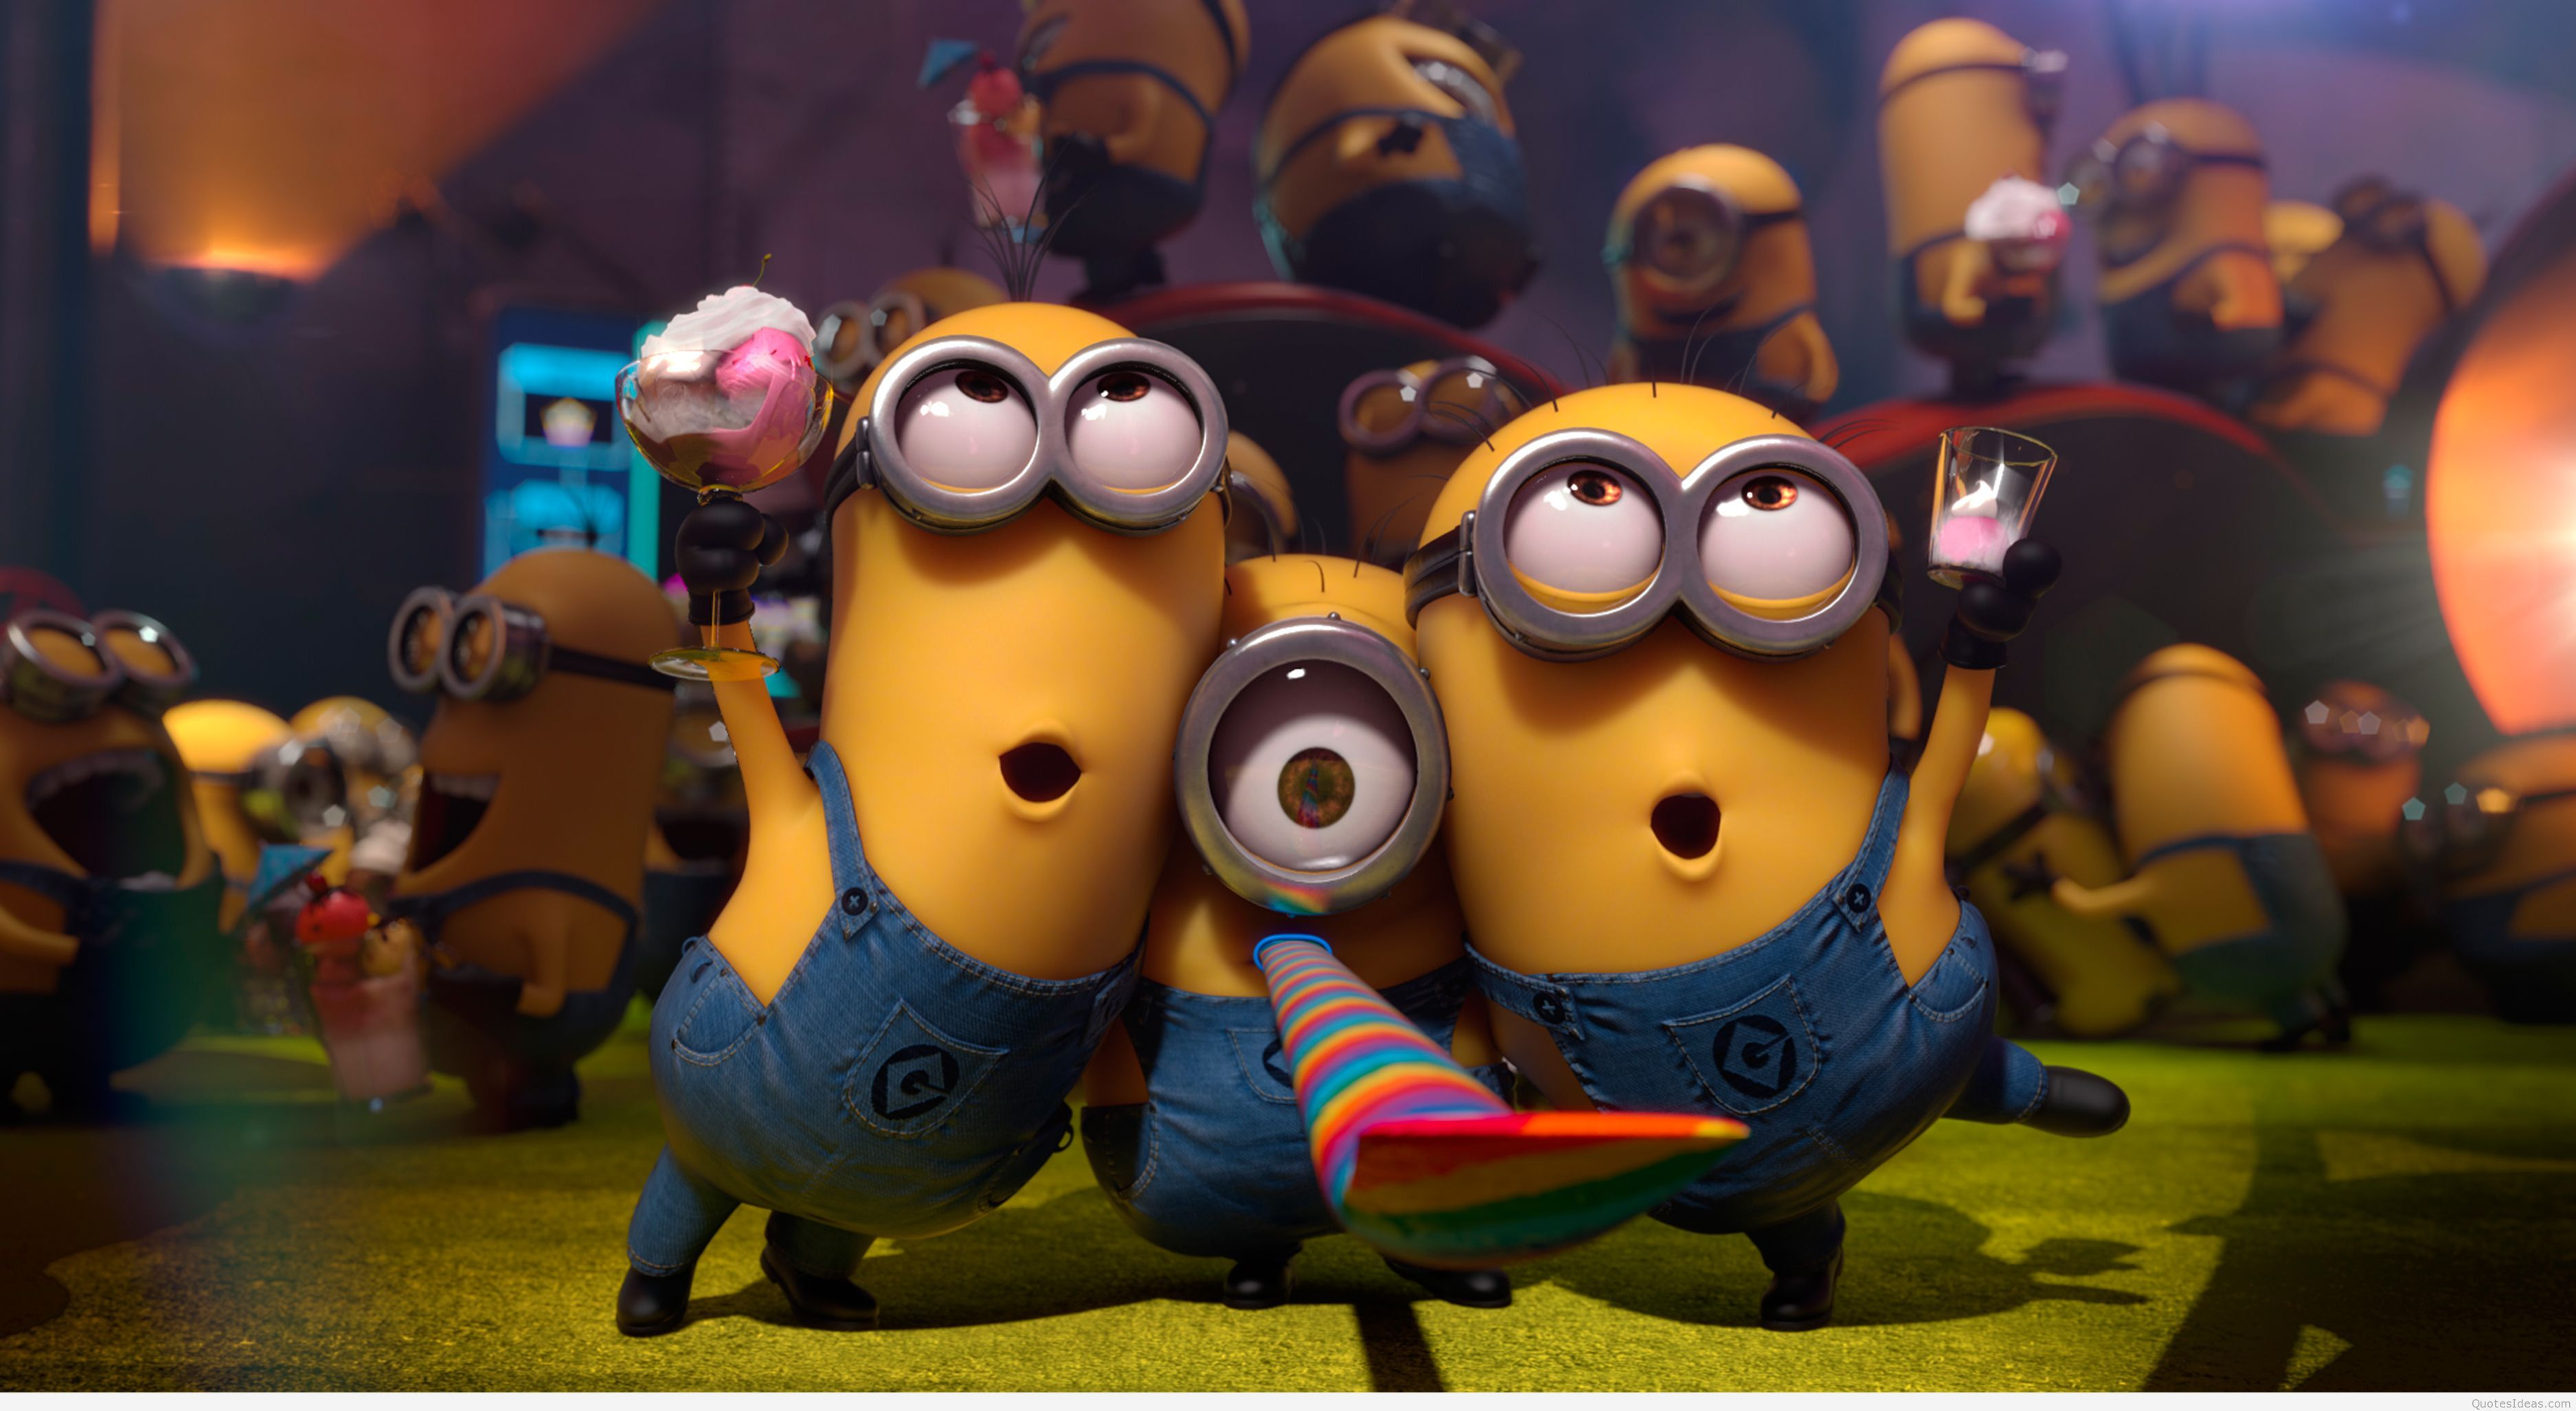 minions movie wallpaper hd : find best latest minions movie